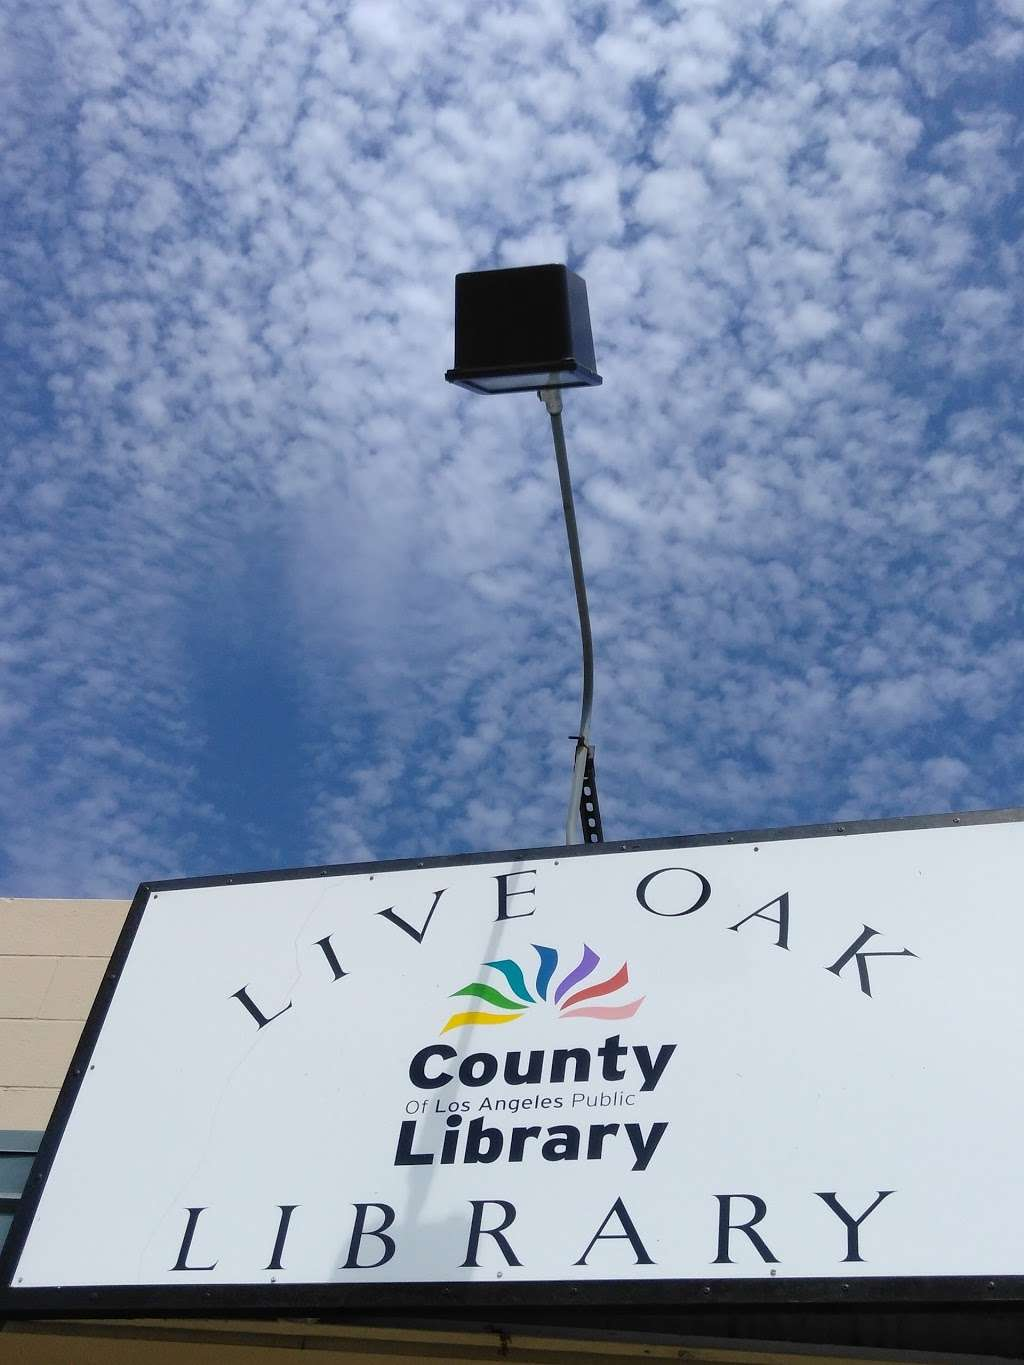 Live Oak Library - library  | Photo 4 of 4 | Address: 4153 Live Oak Ave, Arcadia, CA 91006, USA | Phone: (626) 446-8803